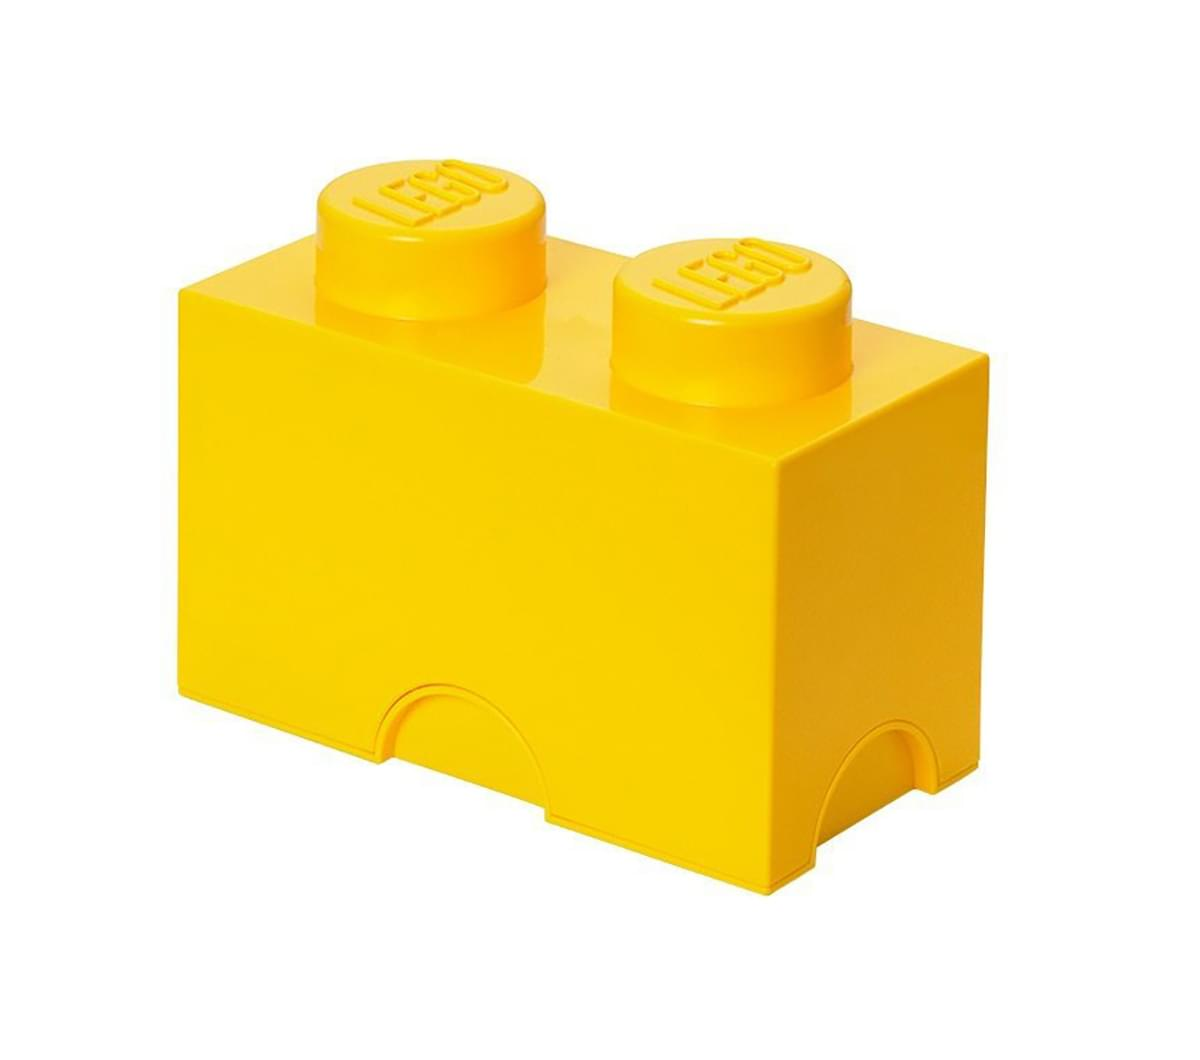 LEGO Storage Brick 2, Bright Yellow